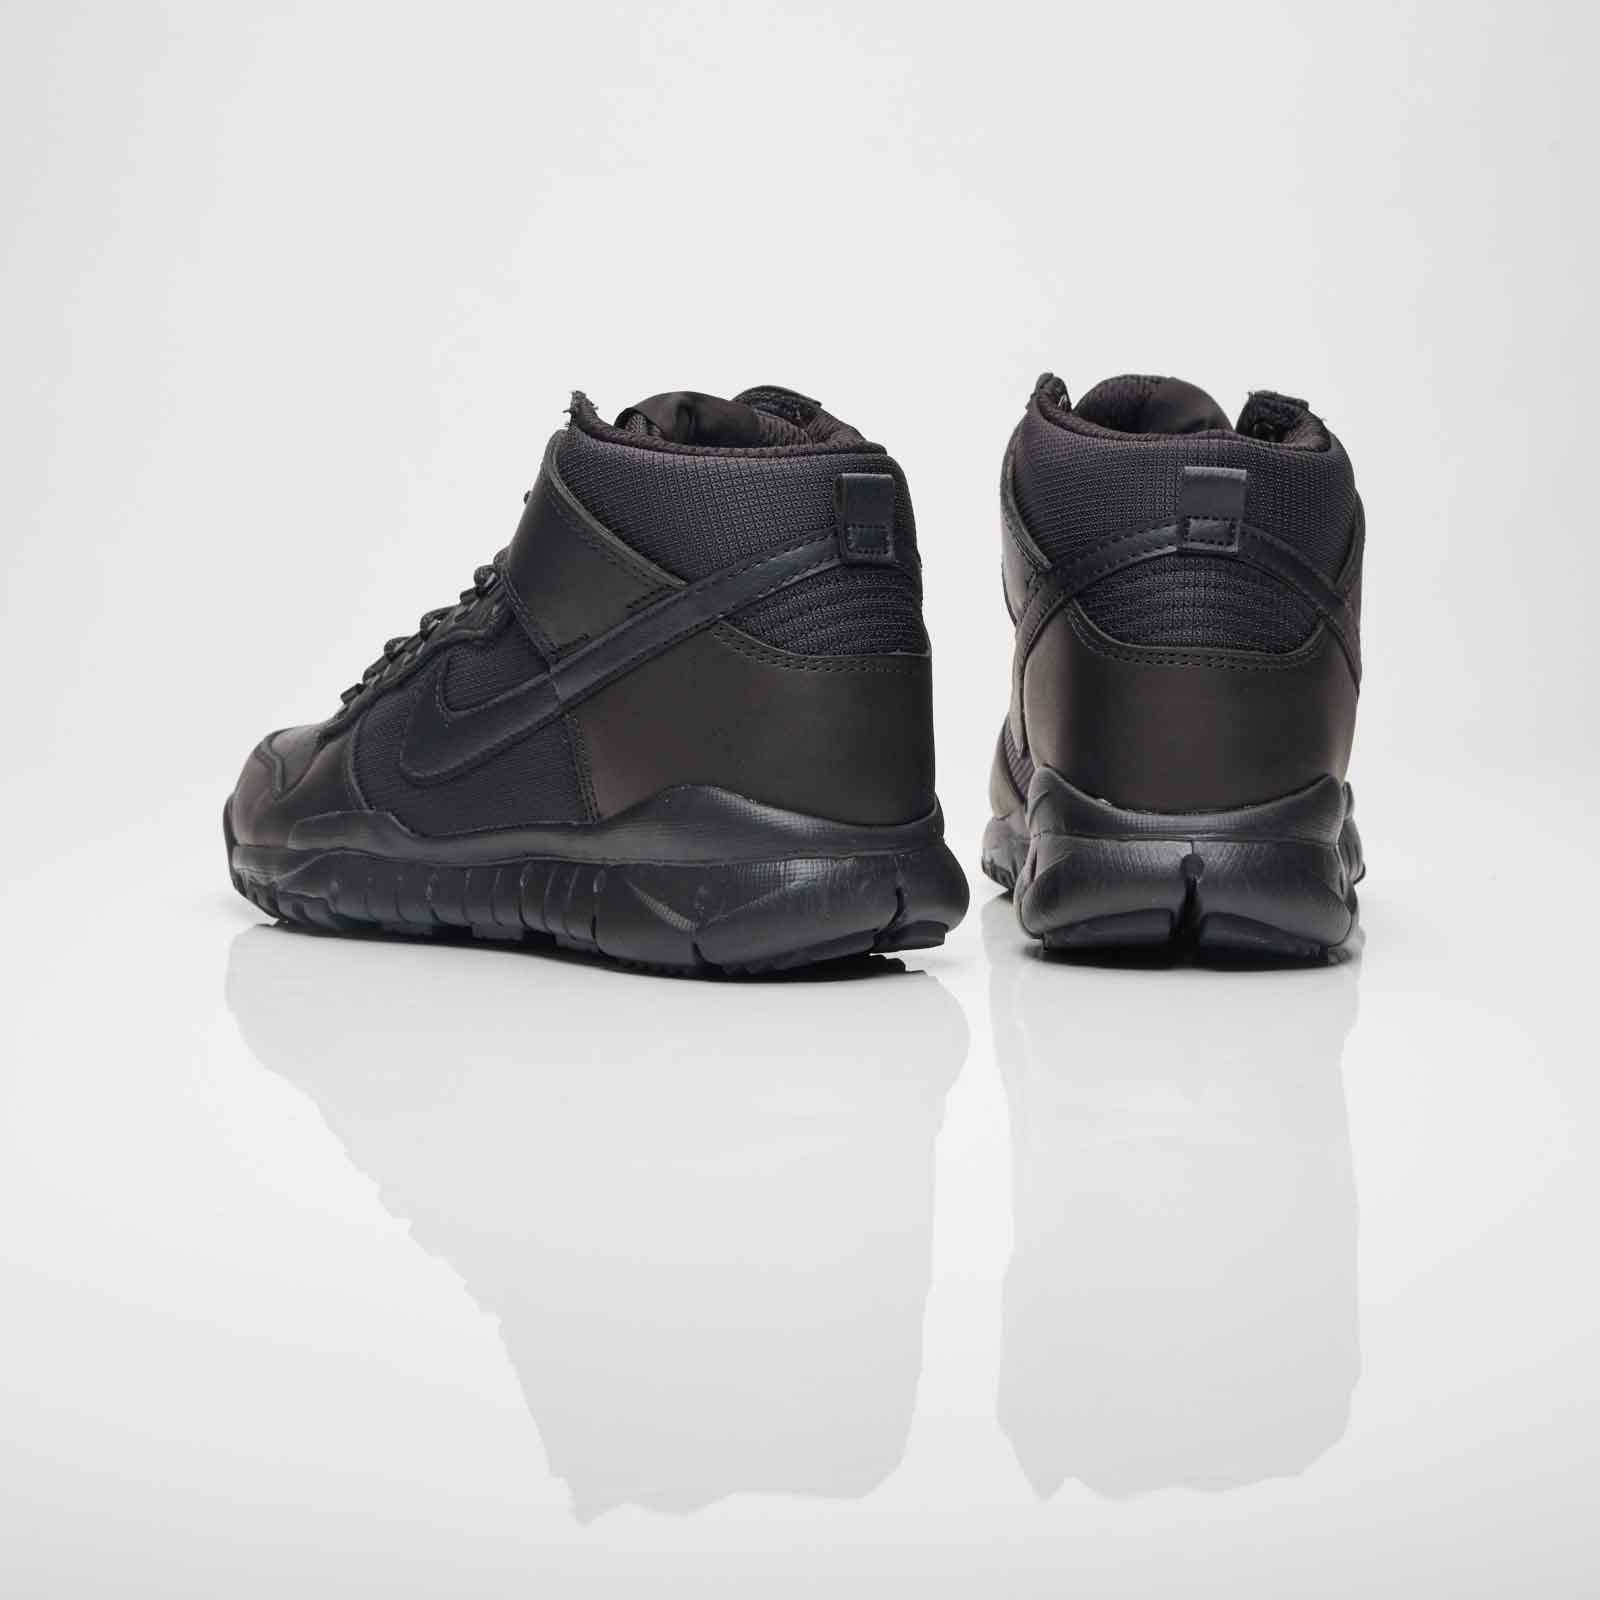 the latest cb317 c113d Nike Dunk High Boot - 536182-001 - Sneakersnstuff   sneakers ...